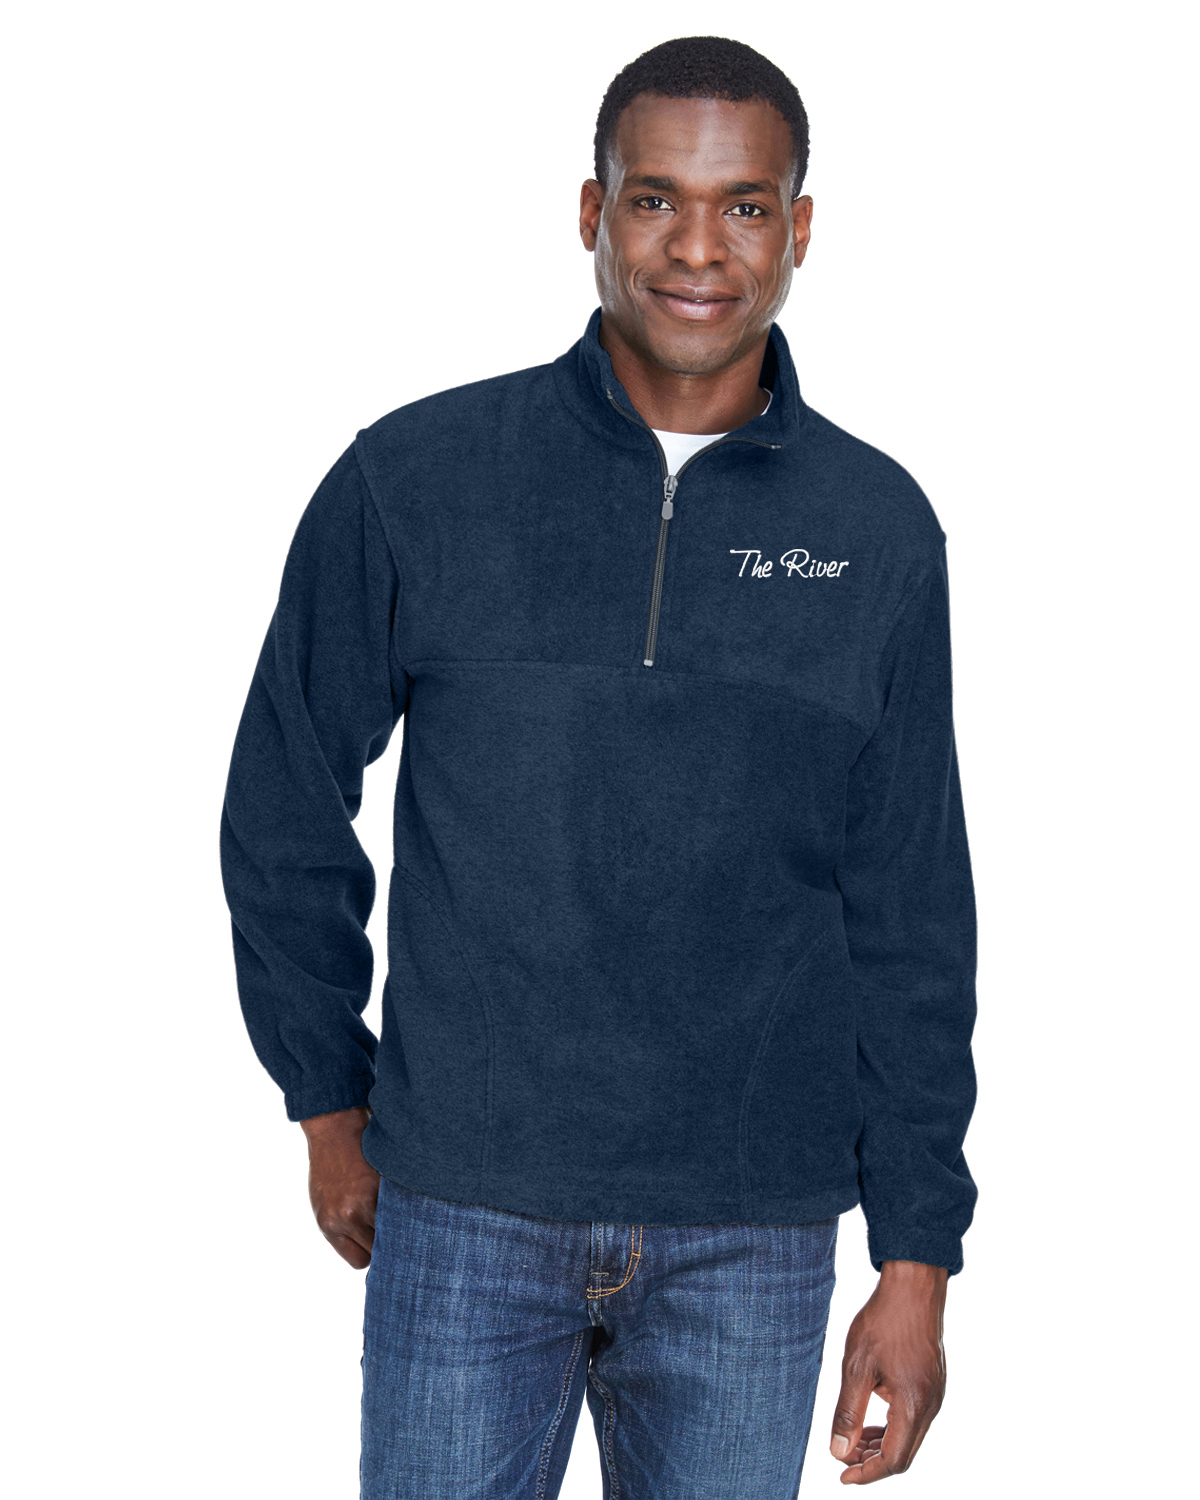 M980 Navy Harriton Adult 8 oz. Quarter-Zip Fleece Pullover Navy